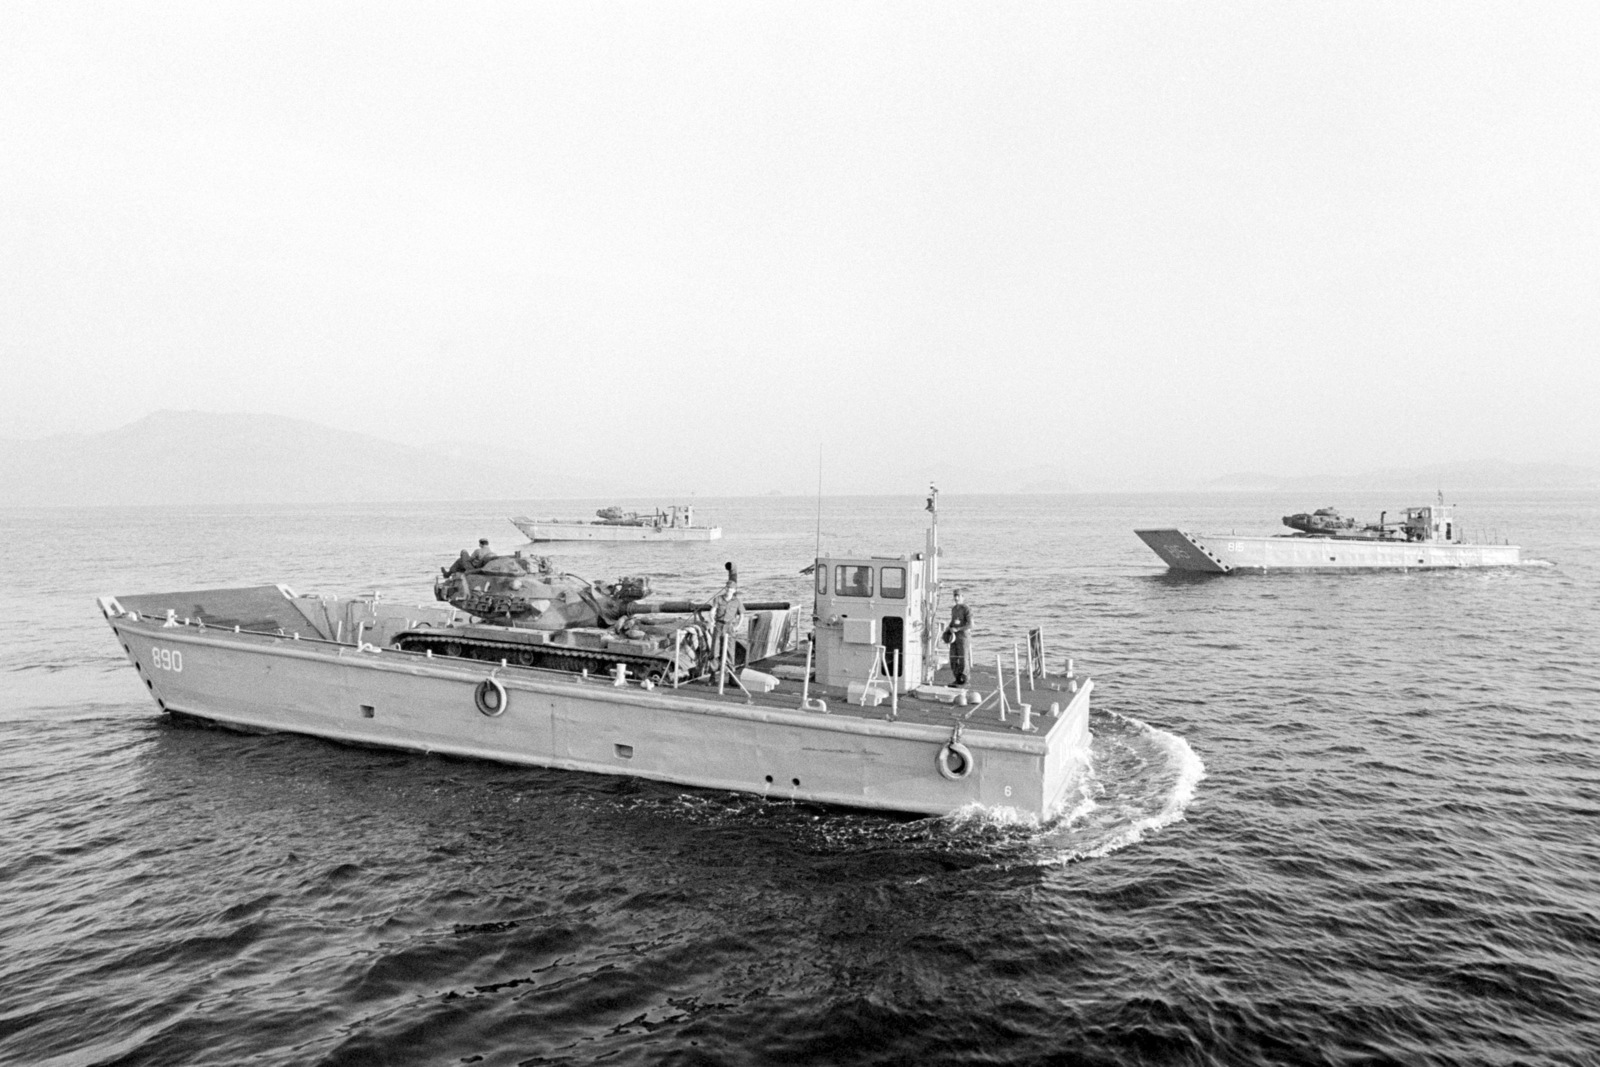 M60 main battle tanks are transported aboard LCM 8 mechanized landing craft during an amphibious assault exercise